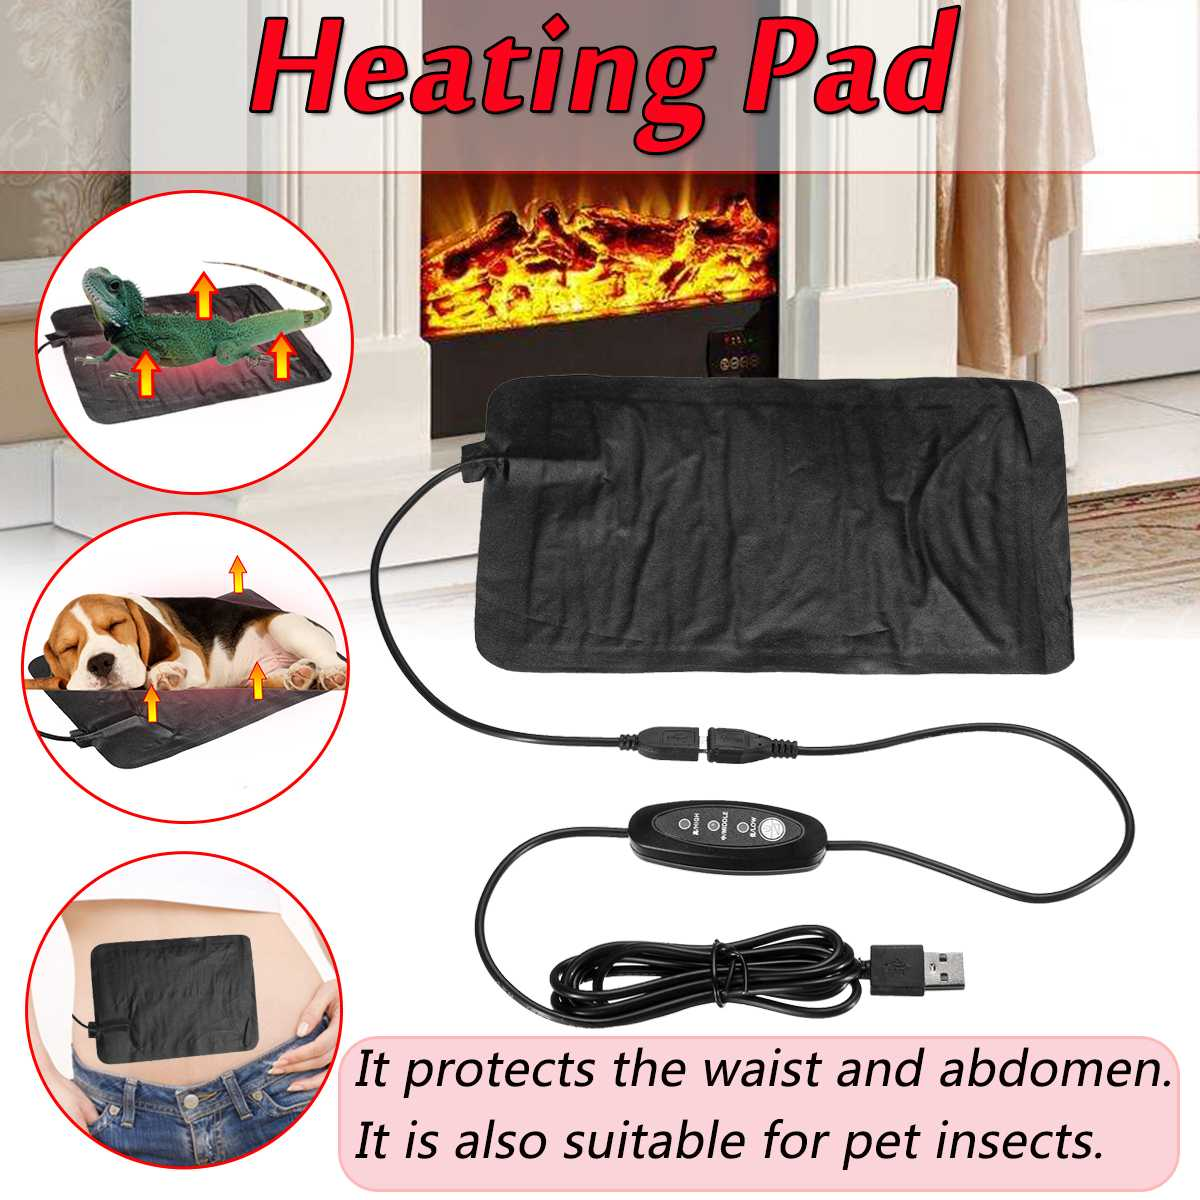 5V USB Electric Warming Heating Pad Waist Abdominal Neck Shoulder Relief Thermal Jackets Clothes Heating Reptile Pet Heating Pad5V USB Electric Warming Heating Pad Waist Abdominal Neck Shoulder Relief Thermal Jackets Clothes Heating Reptile Pet Heating Pad